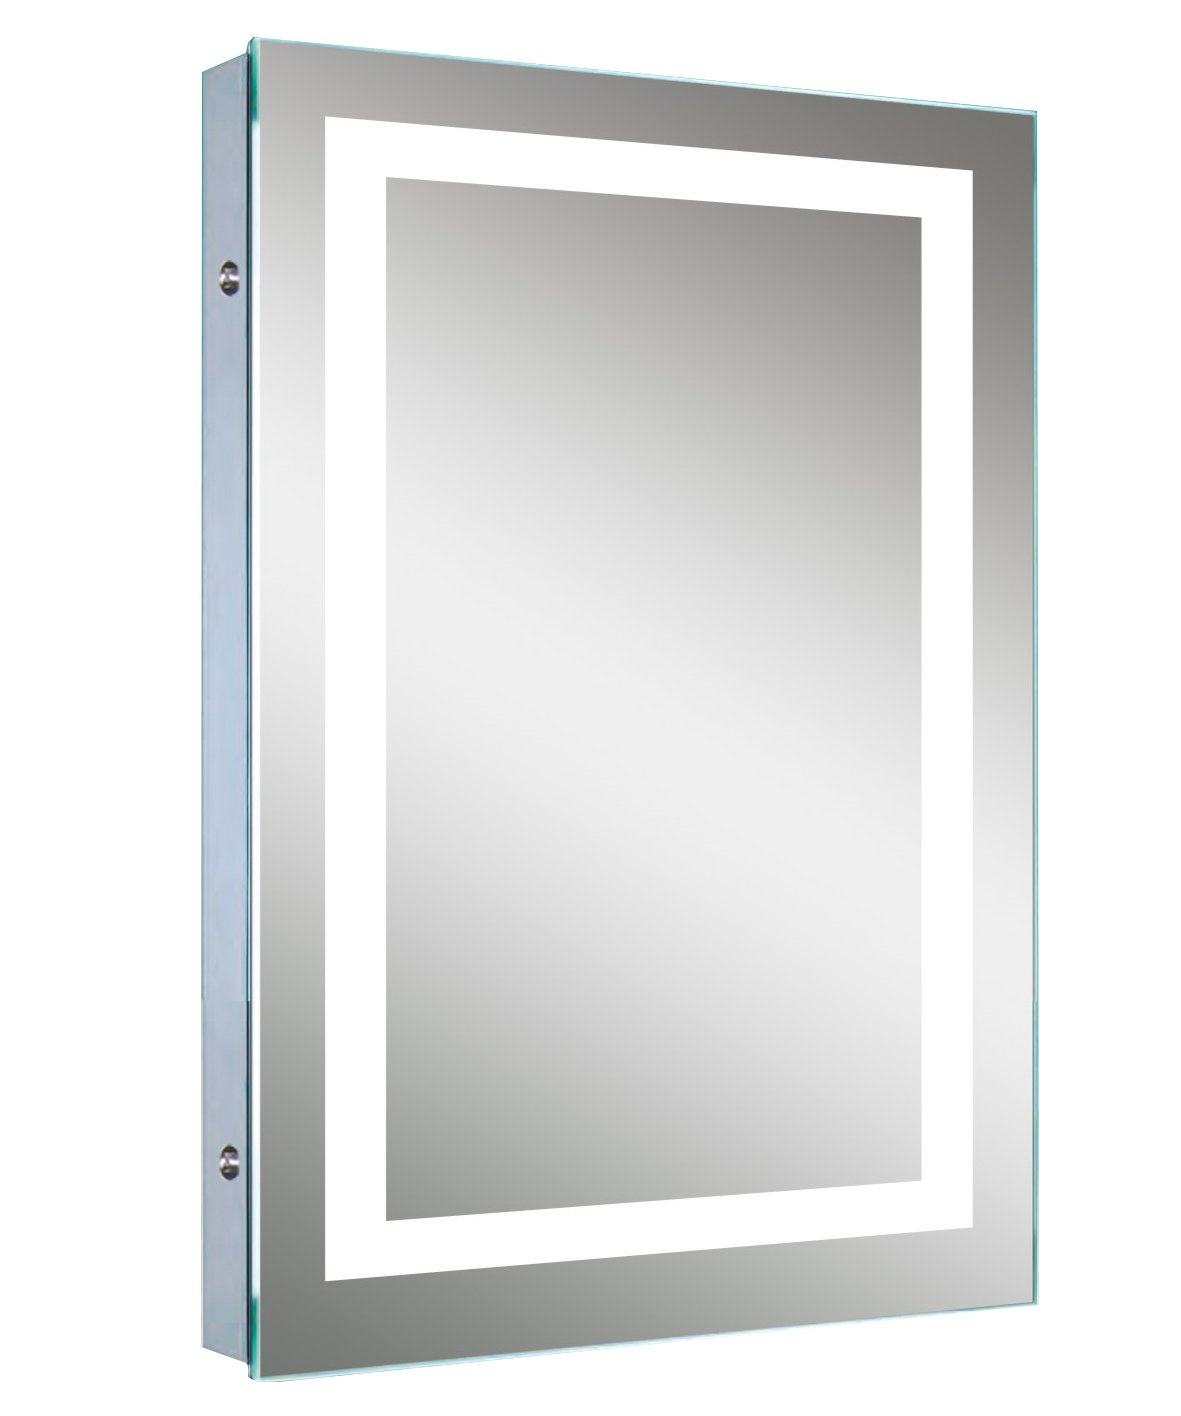 Bathroom mirrors with led lights - Bathroom Mirrors With Led Lights 14